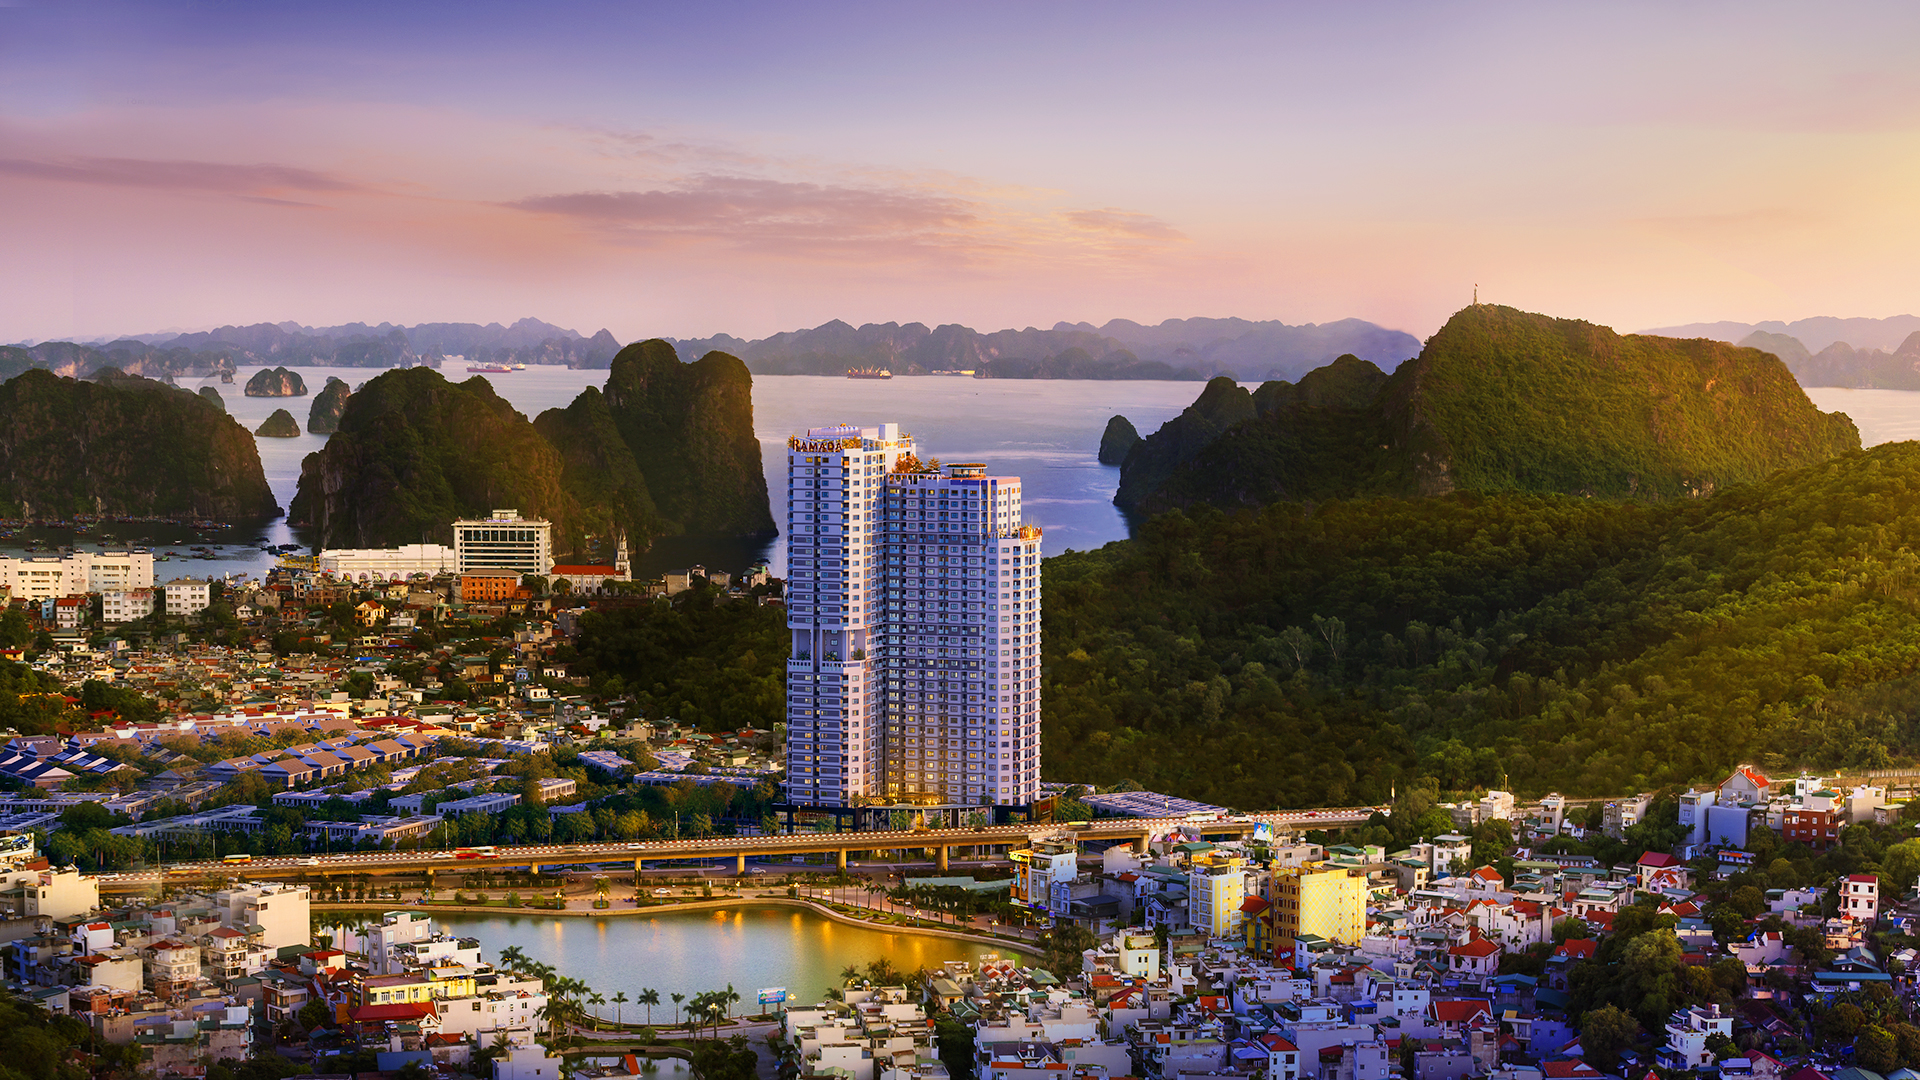 Ramada by Wyndham Hạ Long Bay View